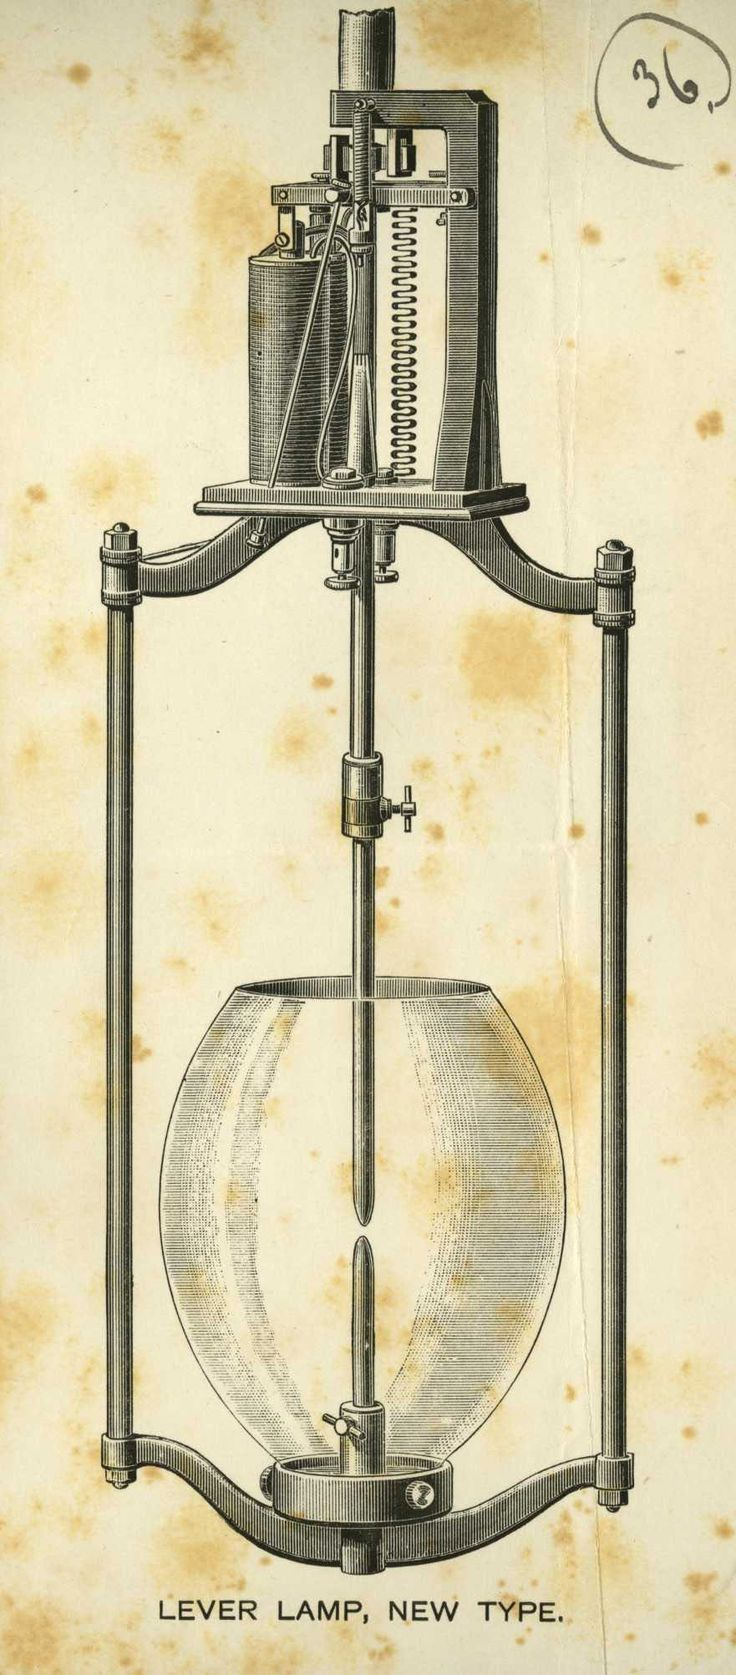 Drawing of a 'Lever Lamp, new type', n.d. c1900. IET Archives ref. SPT/P/I/14/58.